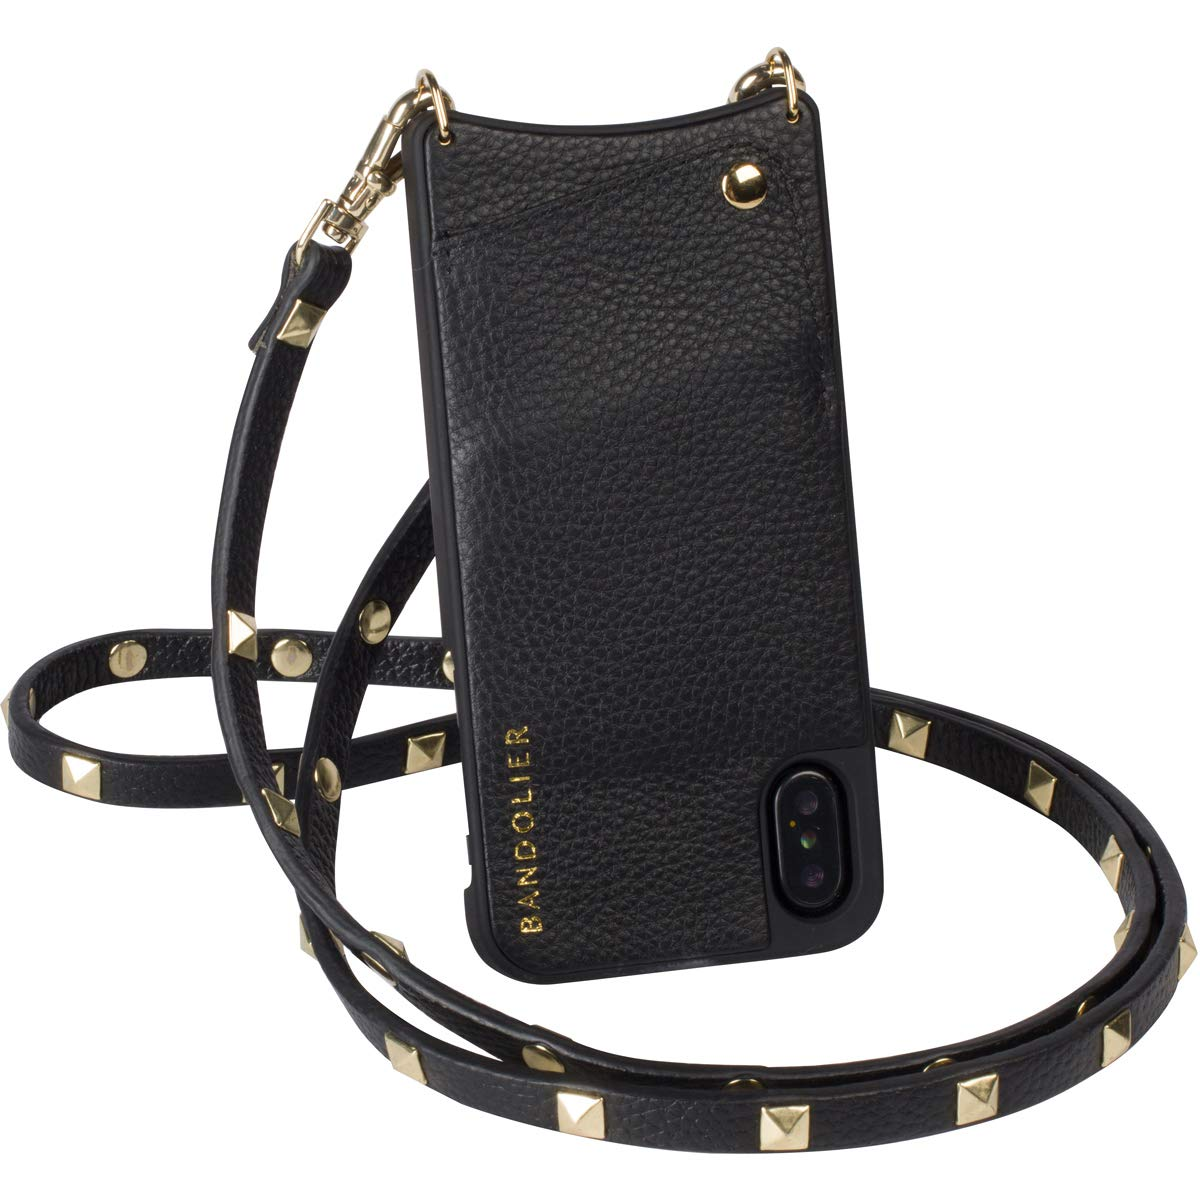 Bandolier [Sarah Crossbody Phone Case and Wallet - Compatible with iPhone 8 Plus, 7 Plus, 6 Plus, 6s Plus - Black Pebble Leather with Gold Detail by Bandolier